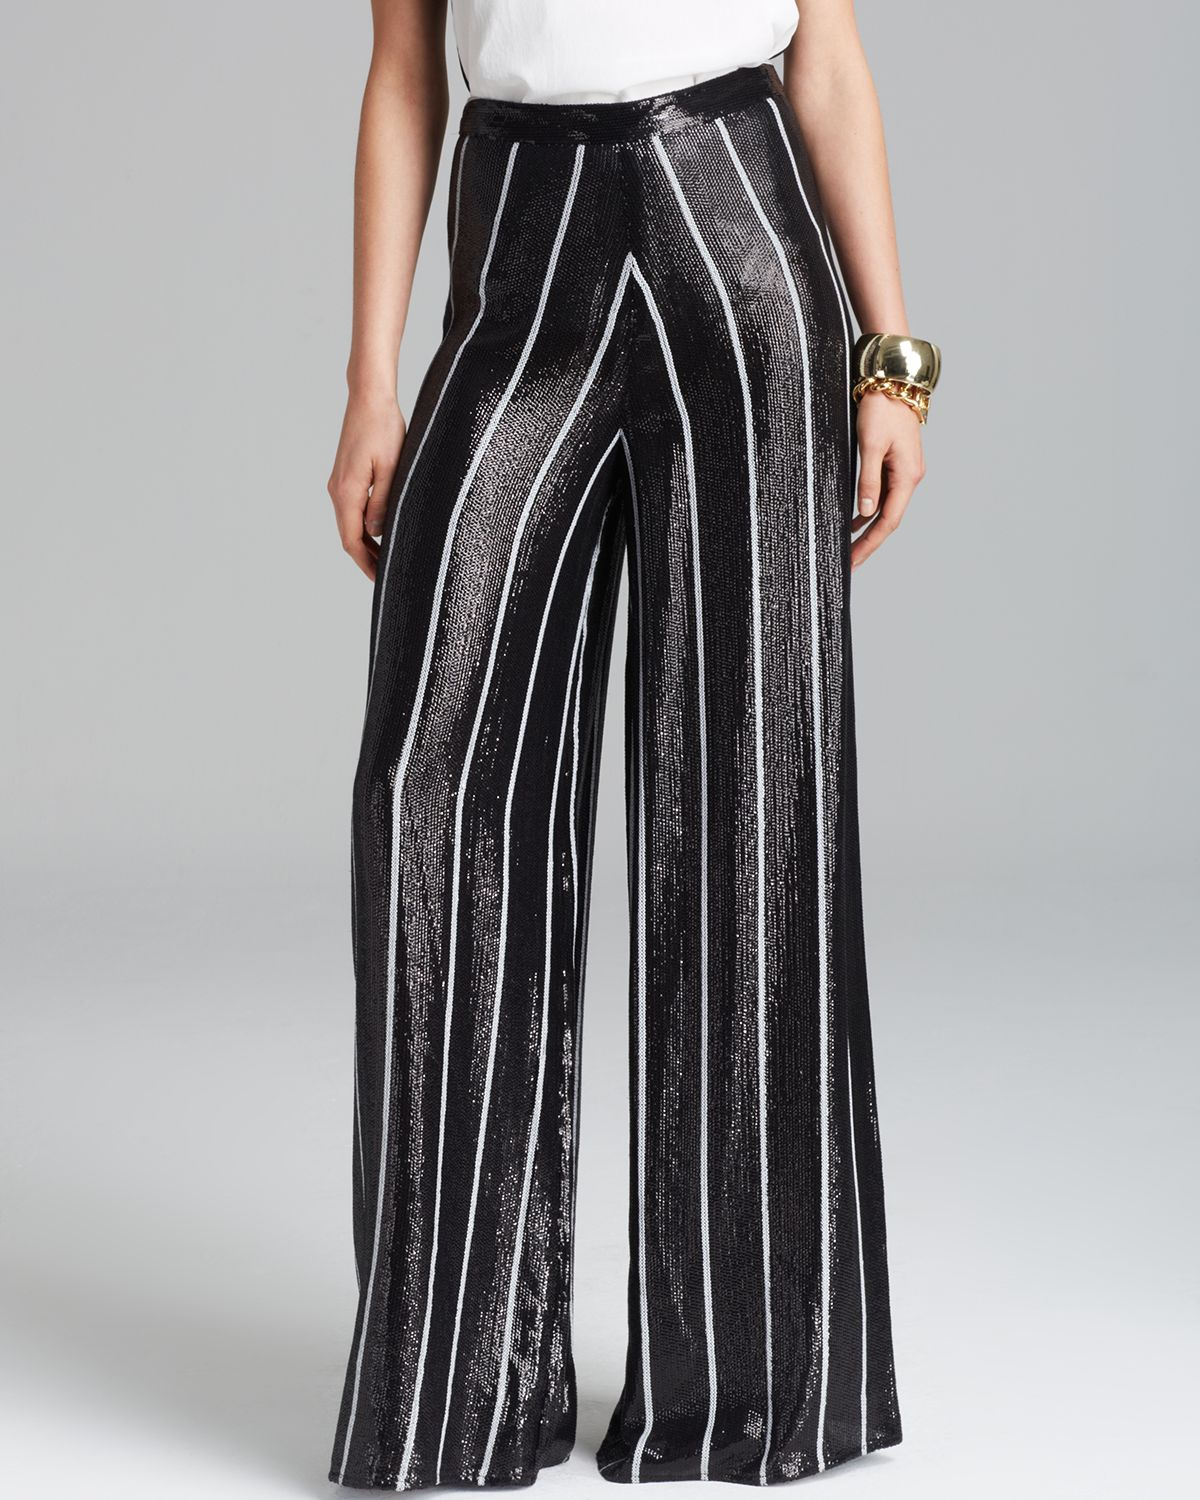 Alice   olivia Alice Olivia Pants Sequin Wide Leg in Black | Lyst